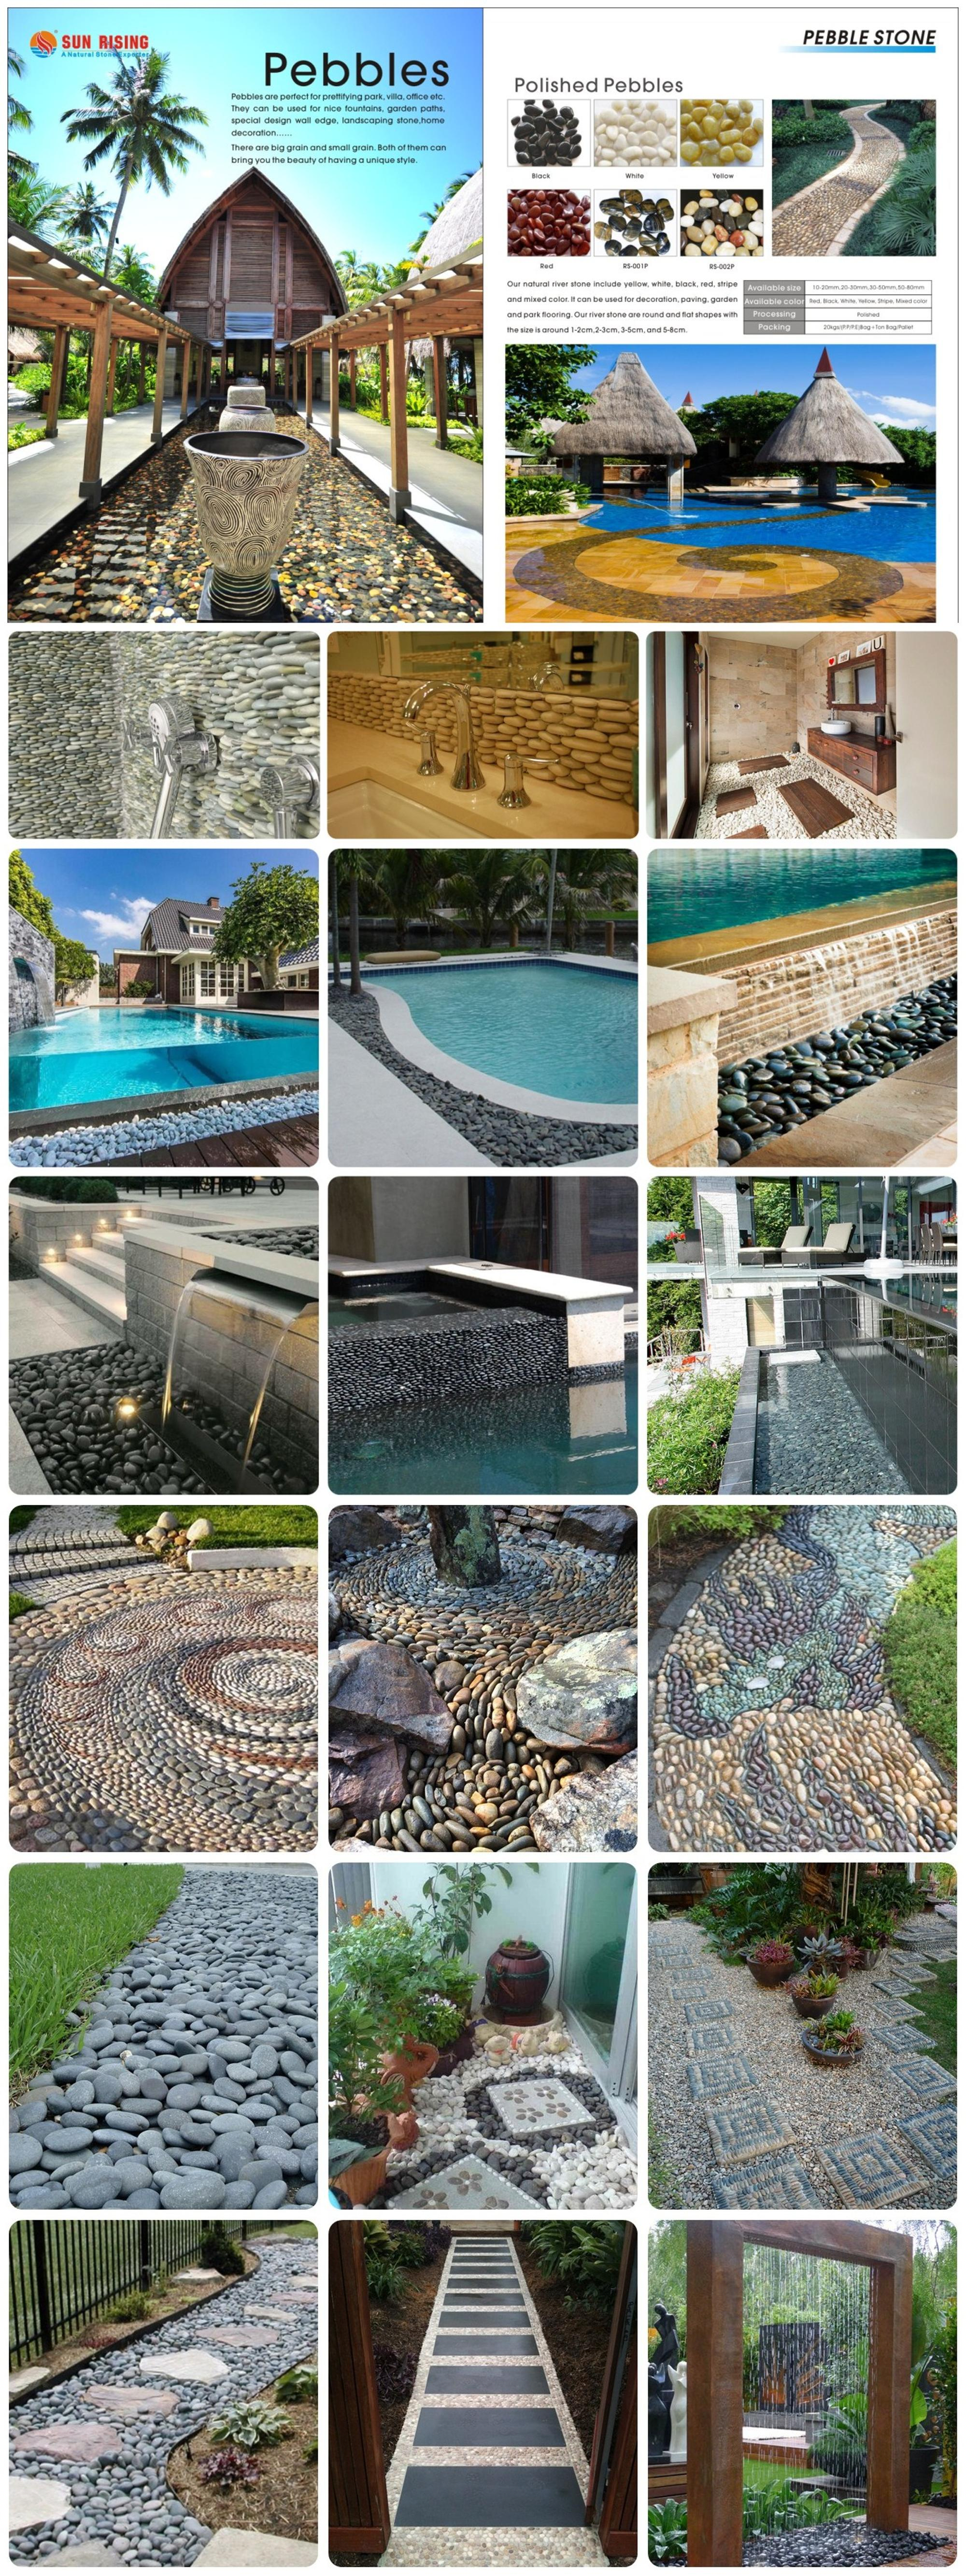 Stock Supply Large Size Natural River Rock Pebble Stone For Landscaping Buy River Pebble Stone River Pebble River Rock Stone Product On Alibaba Com